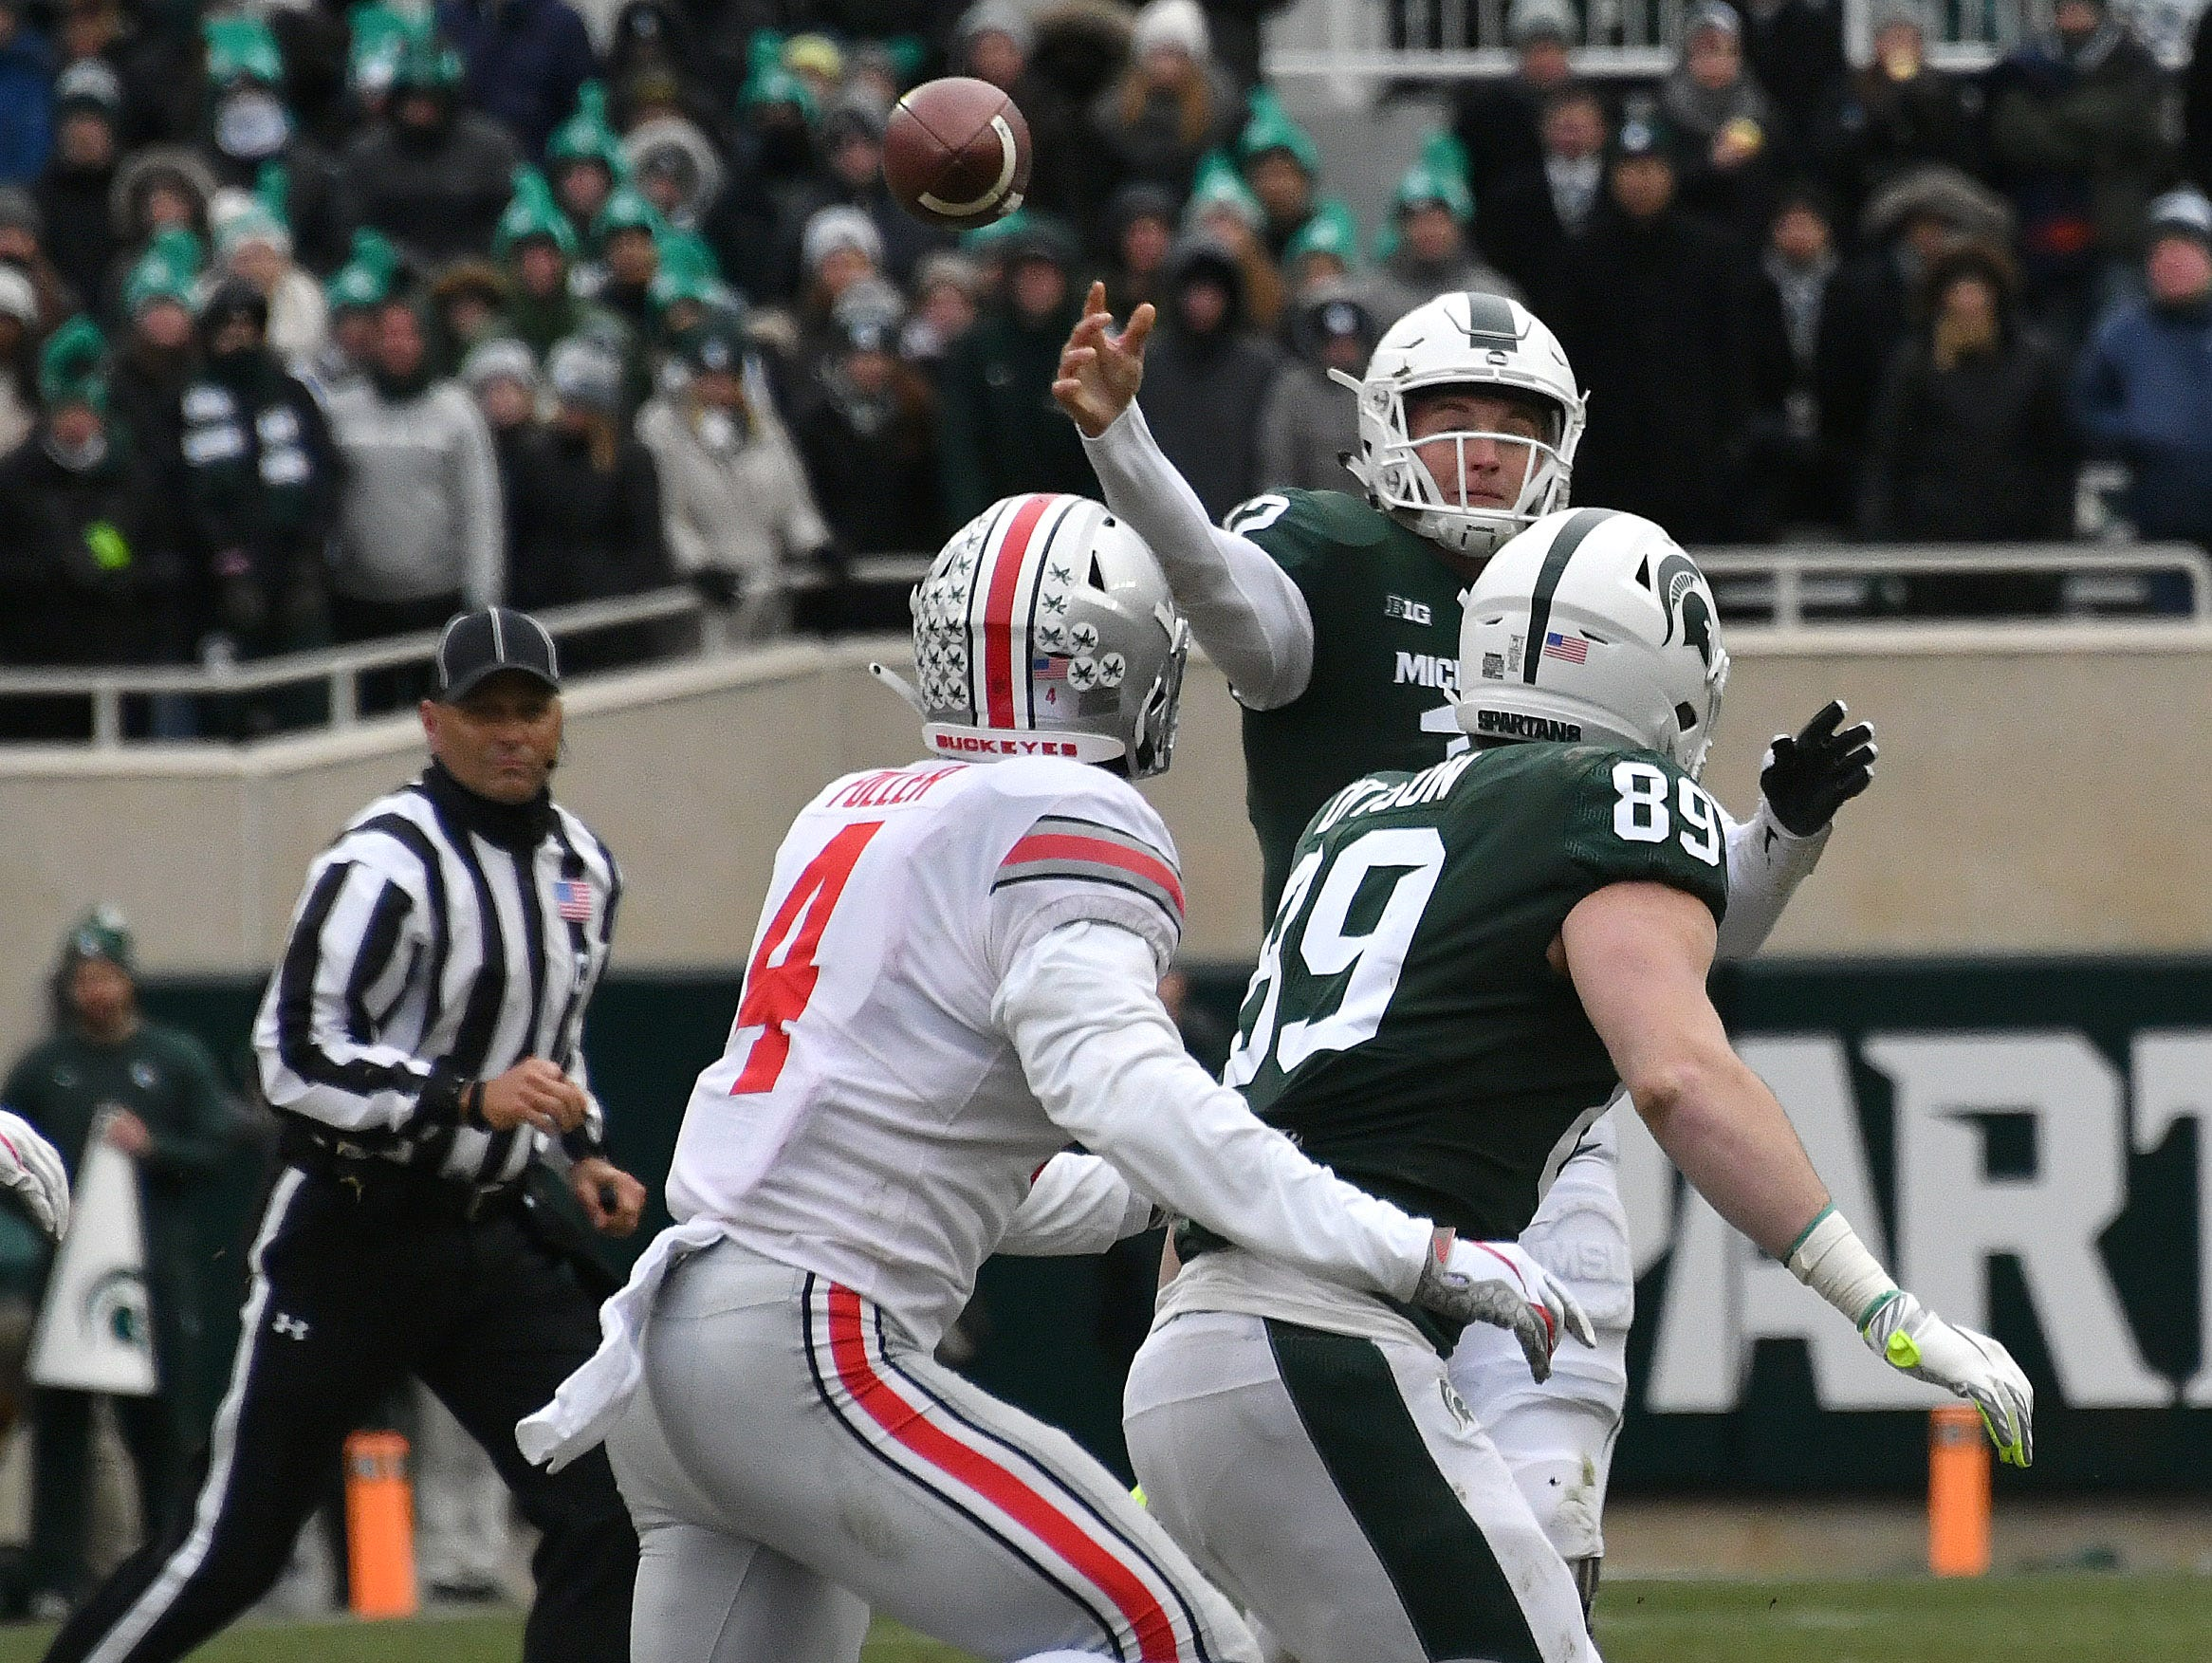 Rocky Lombardi throws at Spartan tight end Matt Dotson in the third quarter.